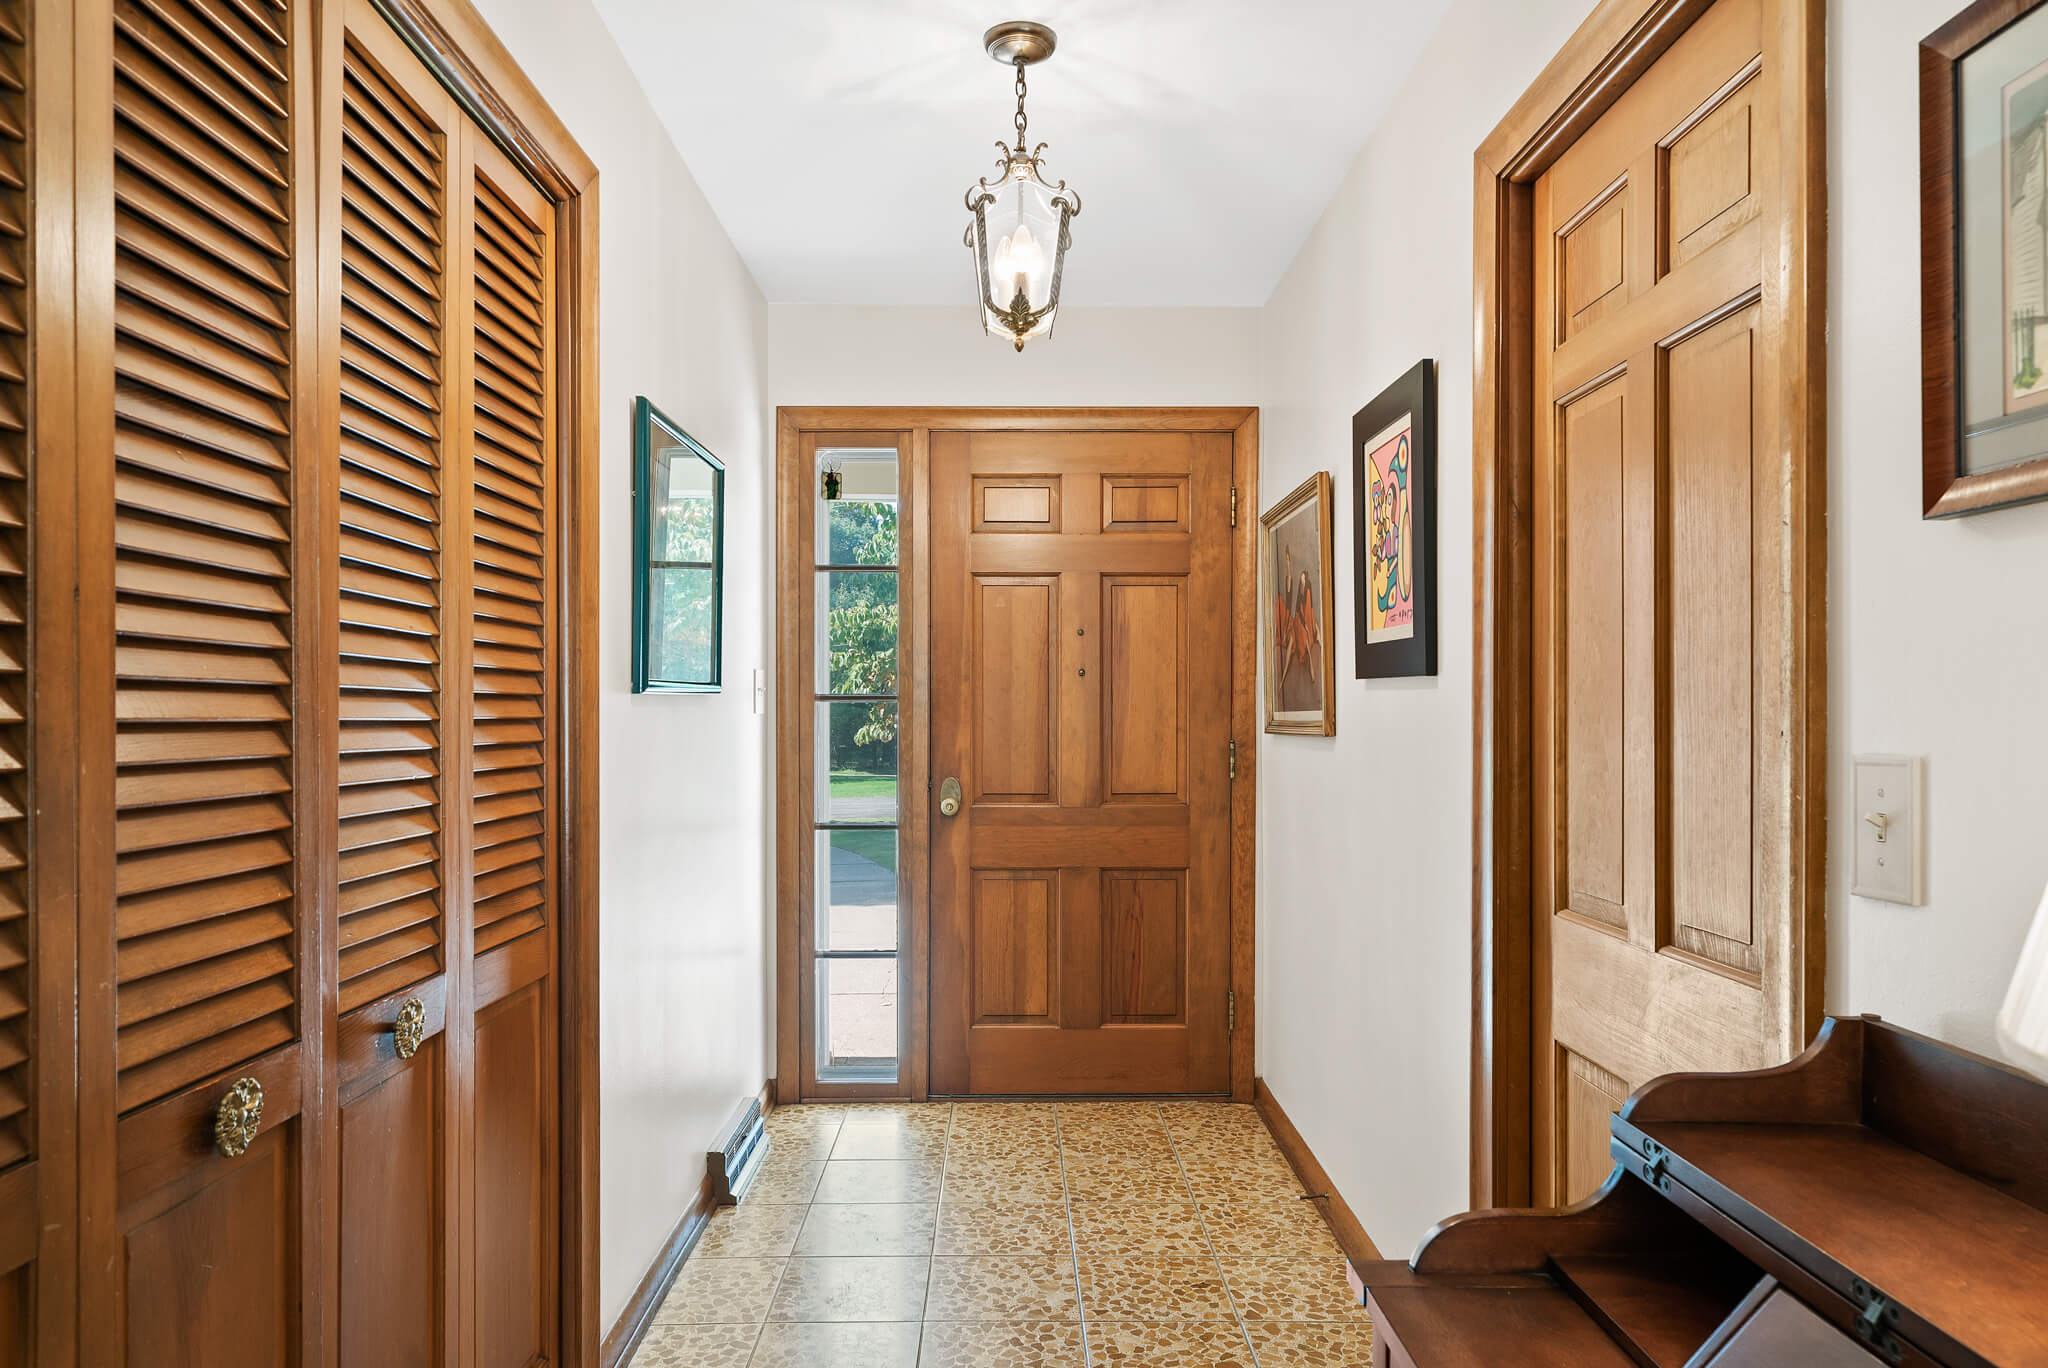 Entry way to 4349 Orandale Dr in Chagrin Falls